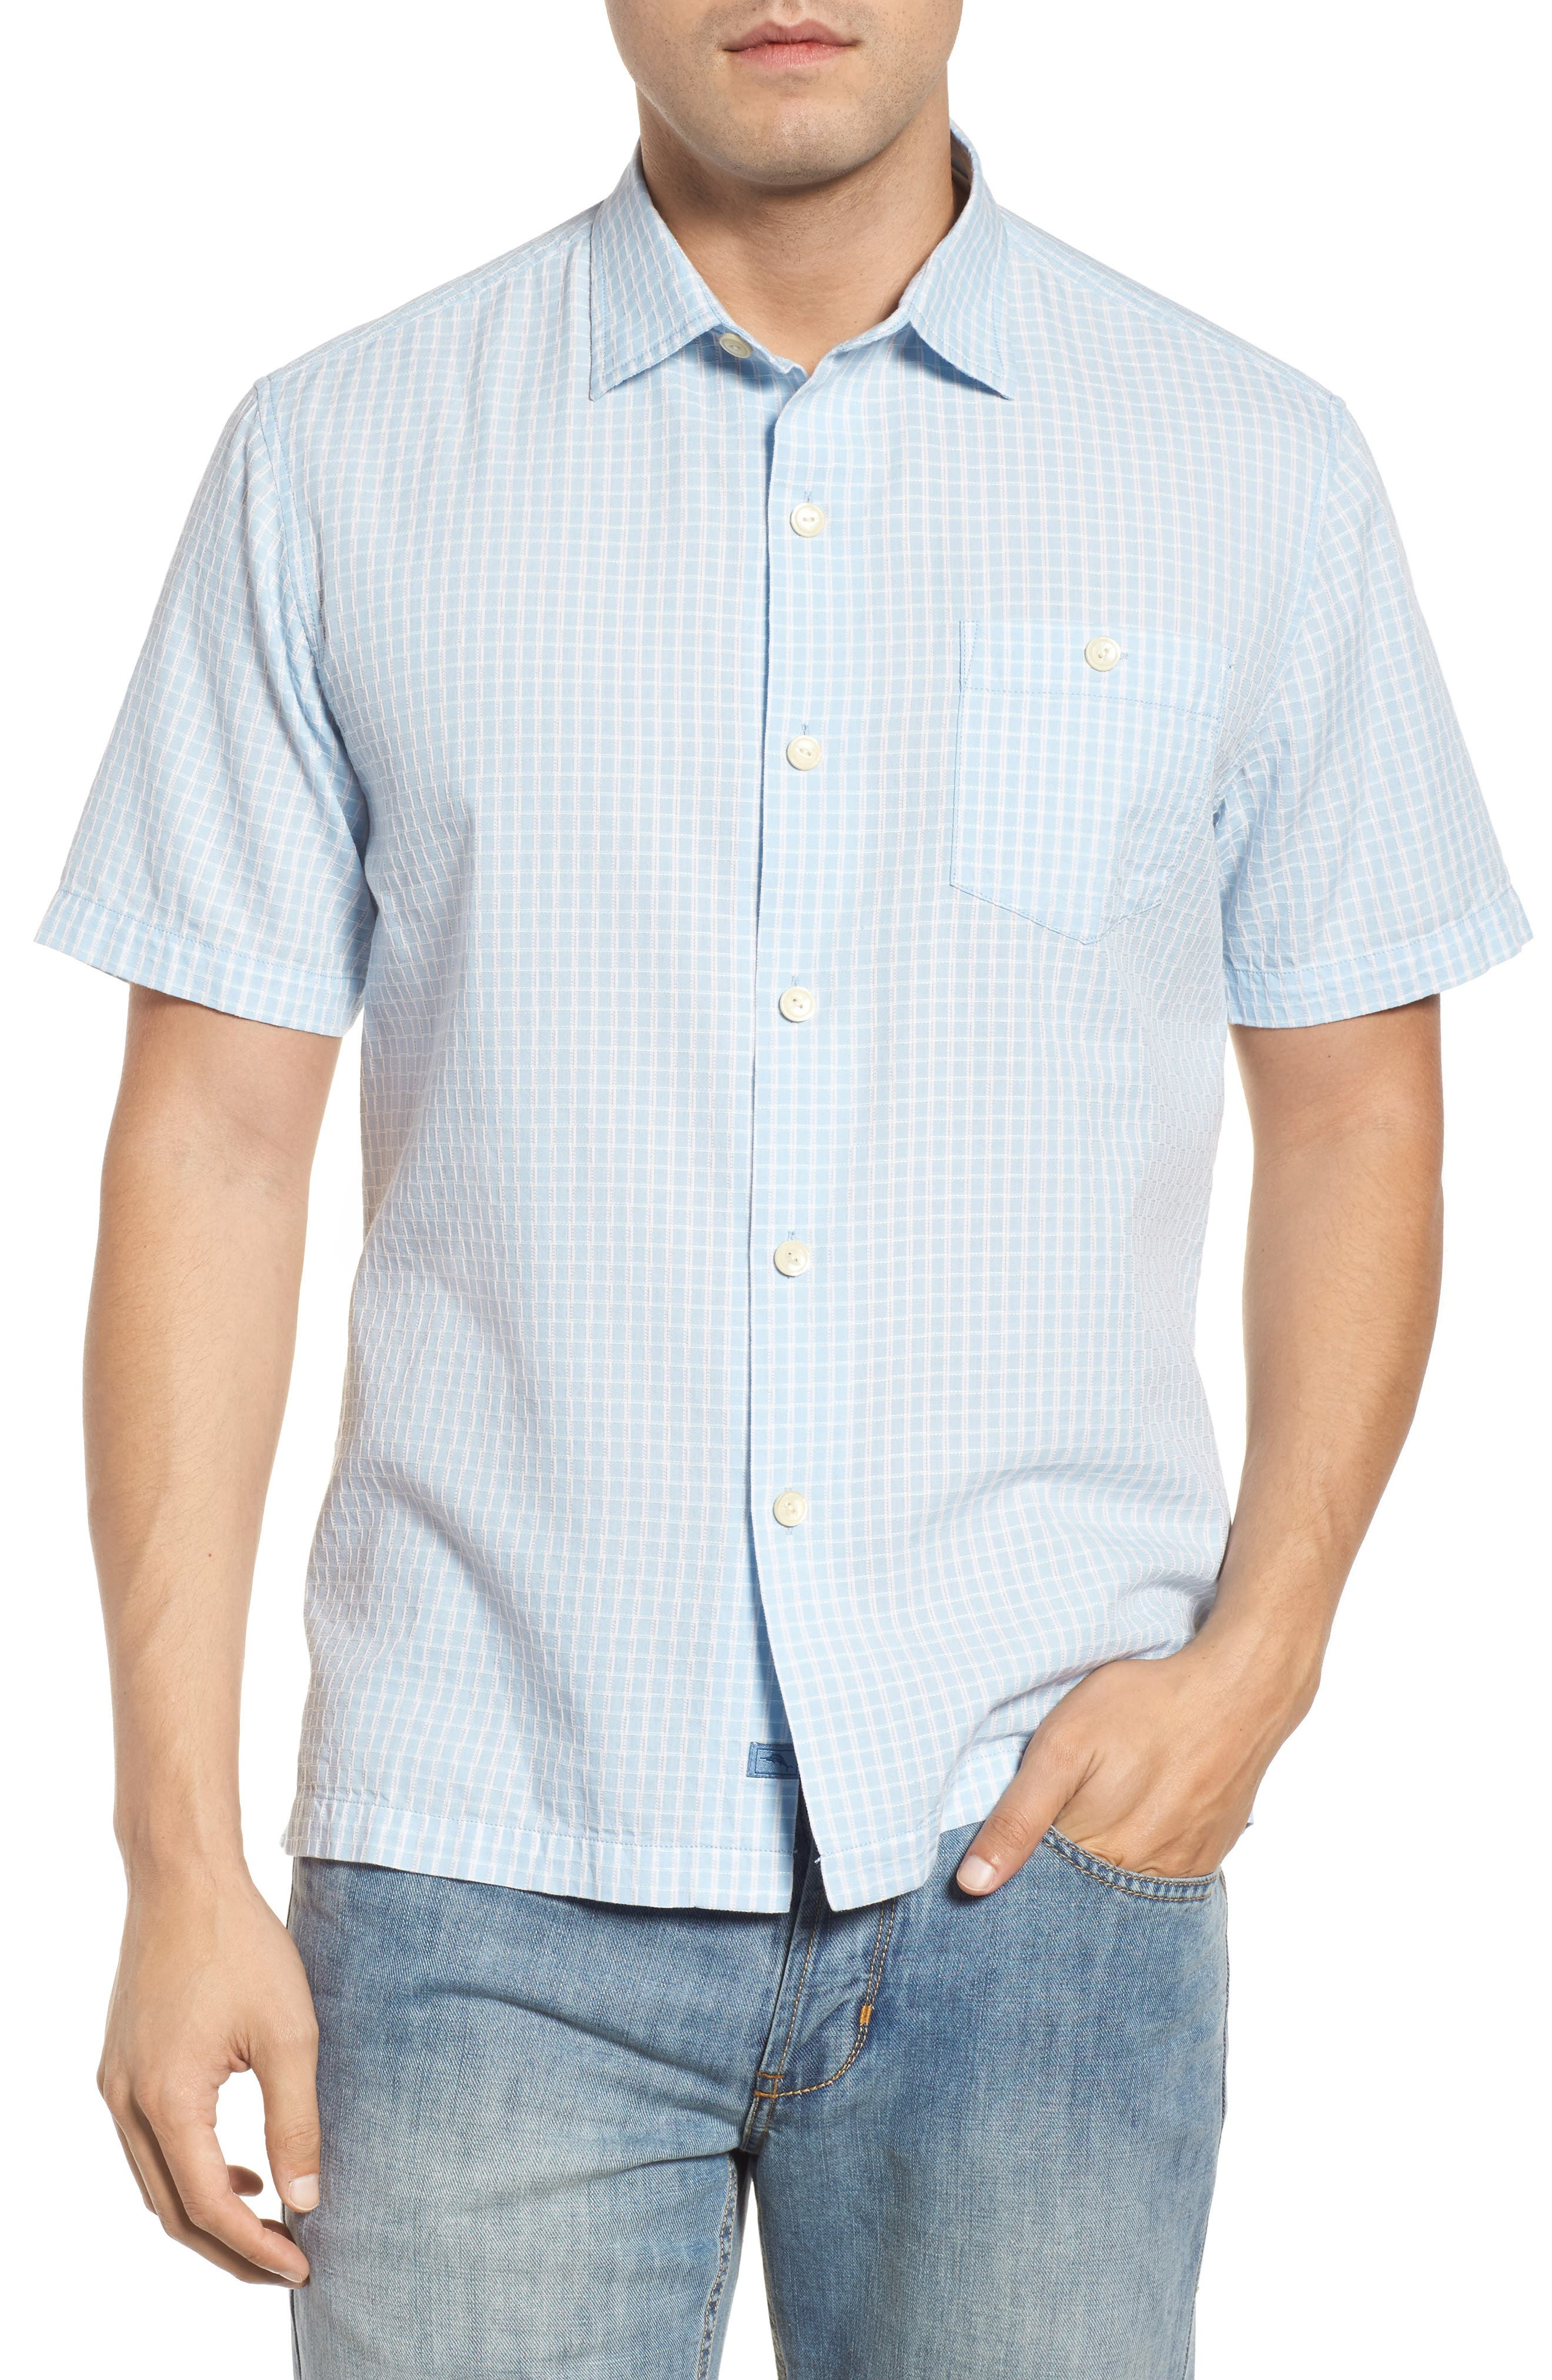 Alternate Image 1 Selected - Tommy Bahama Once in a Tile Regular Fit Sport Shirt